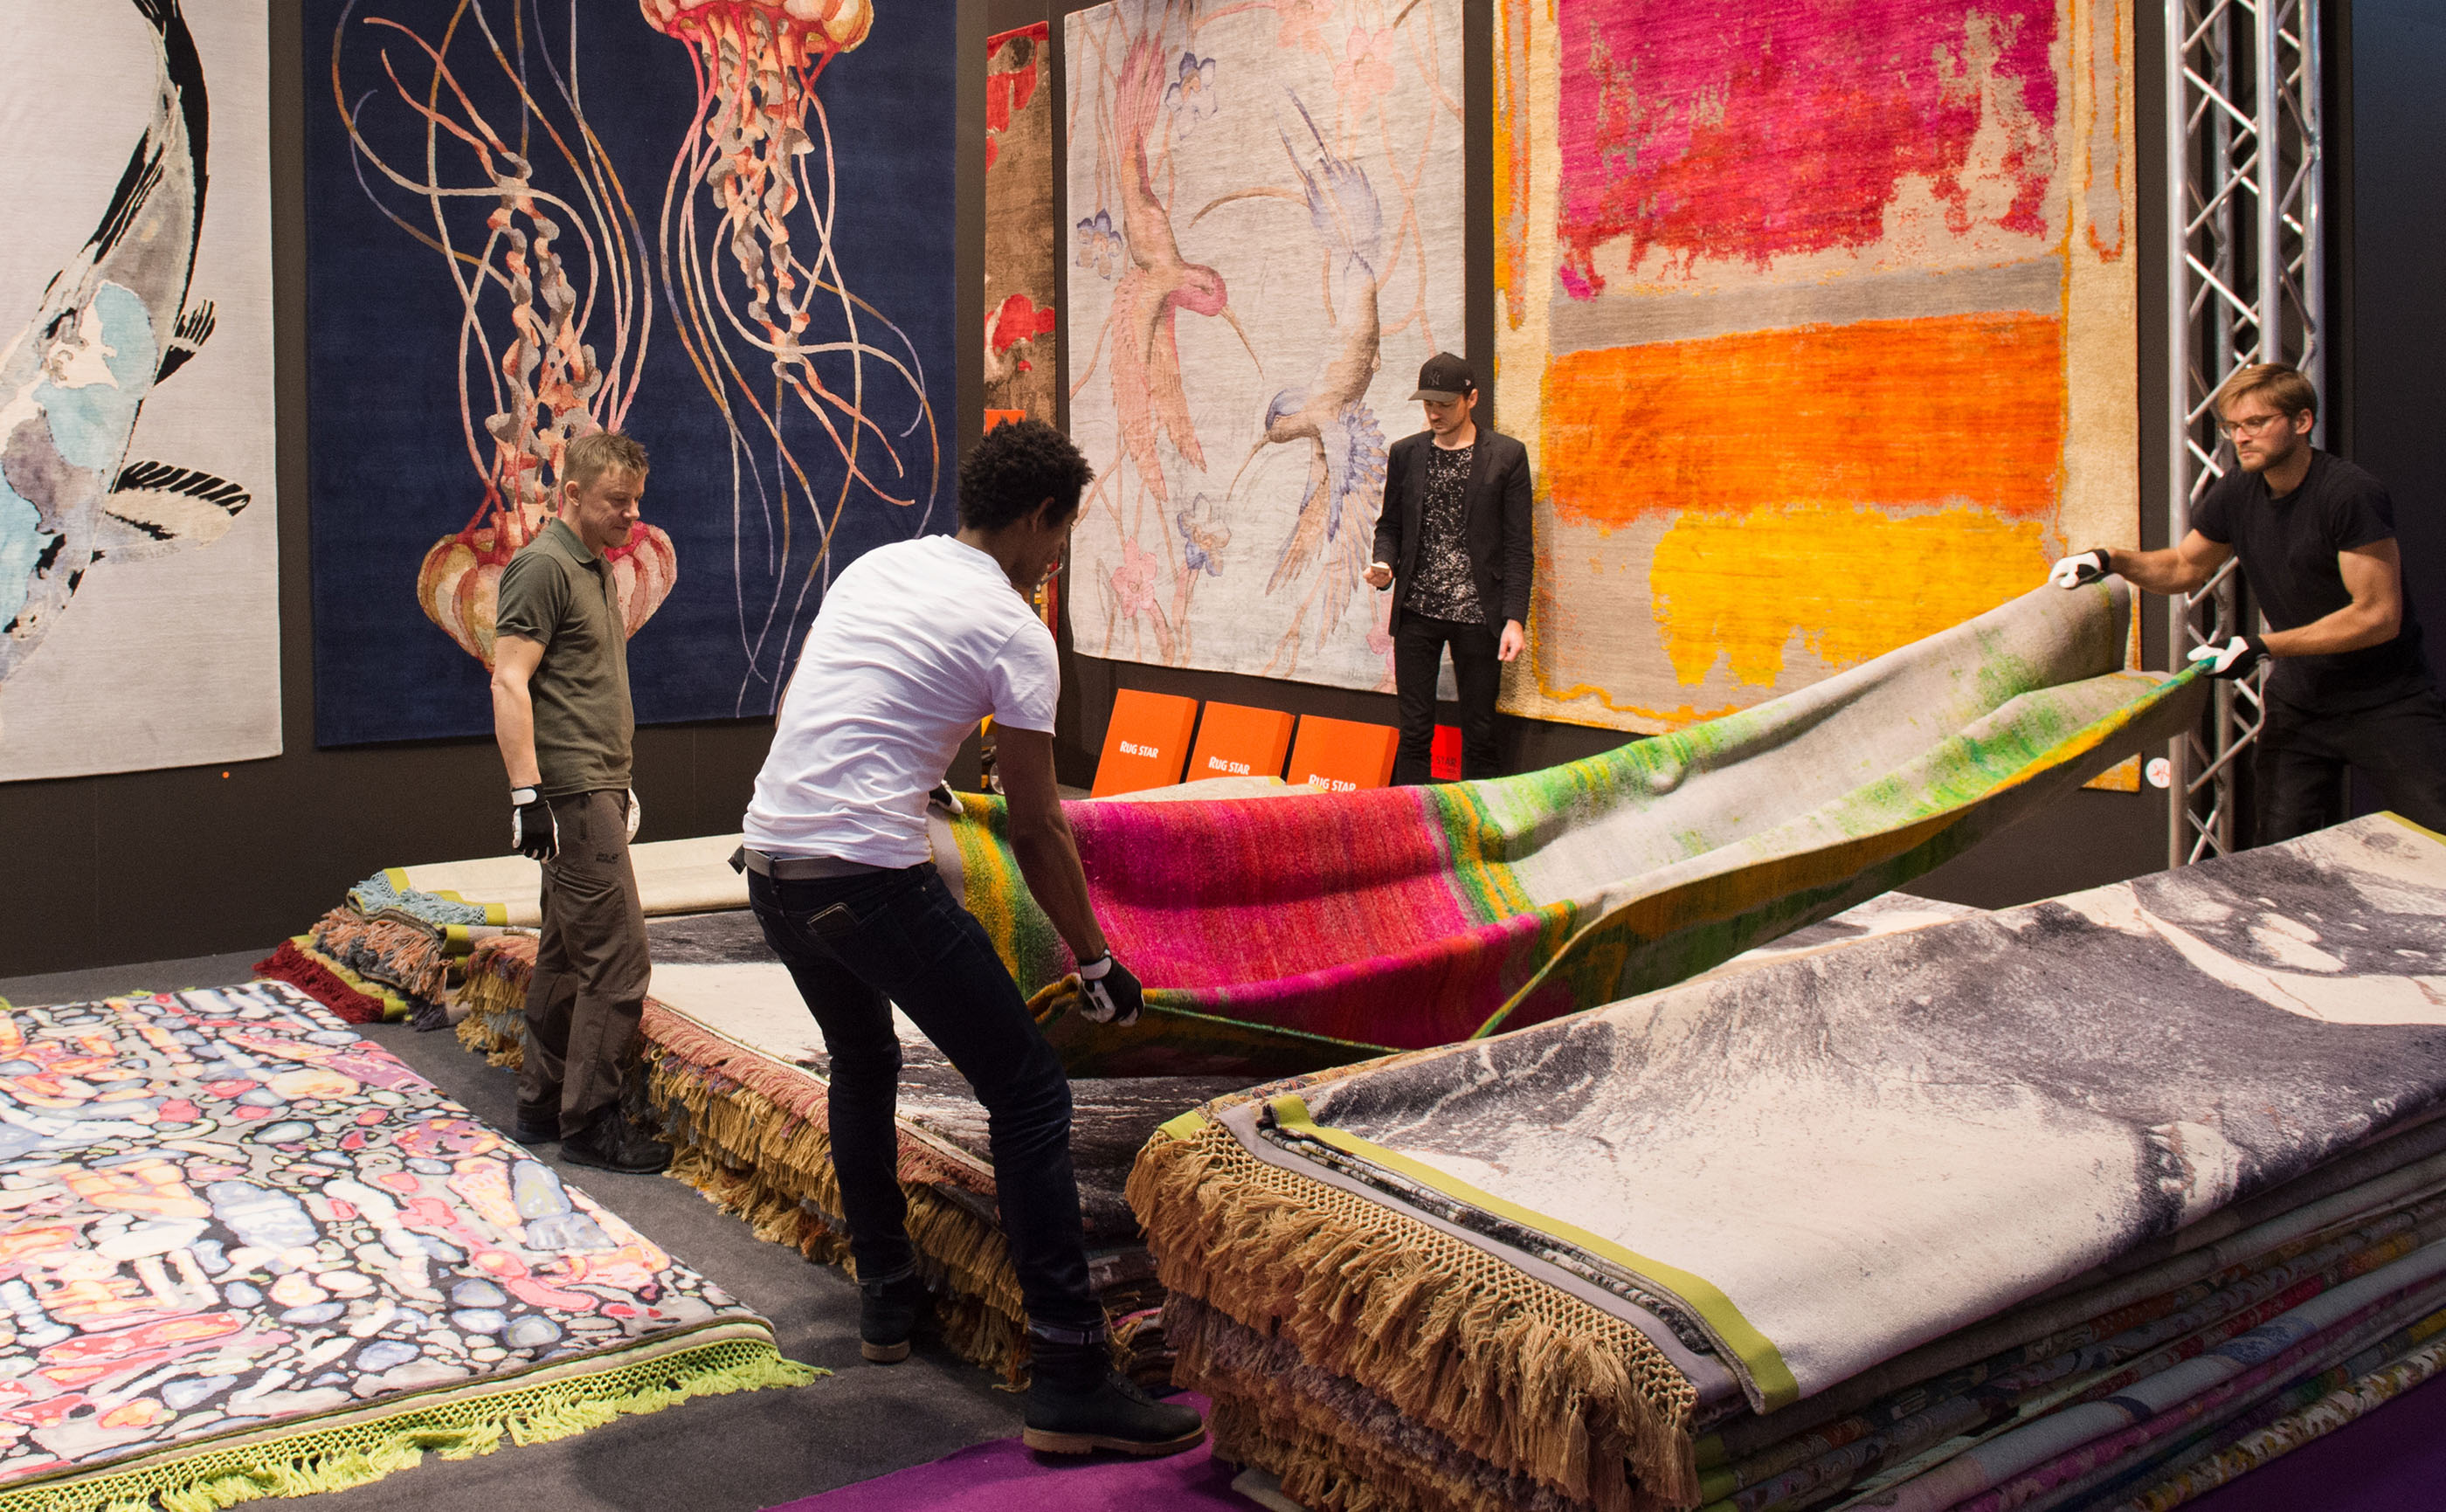 The Domotex stand of renowned brand Rug Star as it appeared during the 2018 fair. | Image courtesy of Domotex.